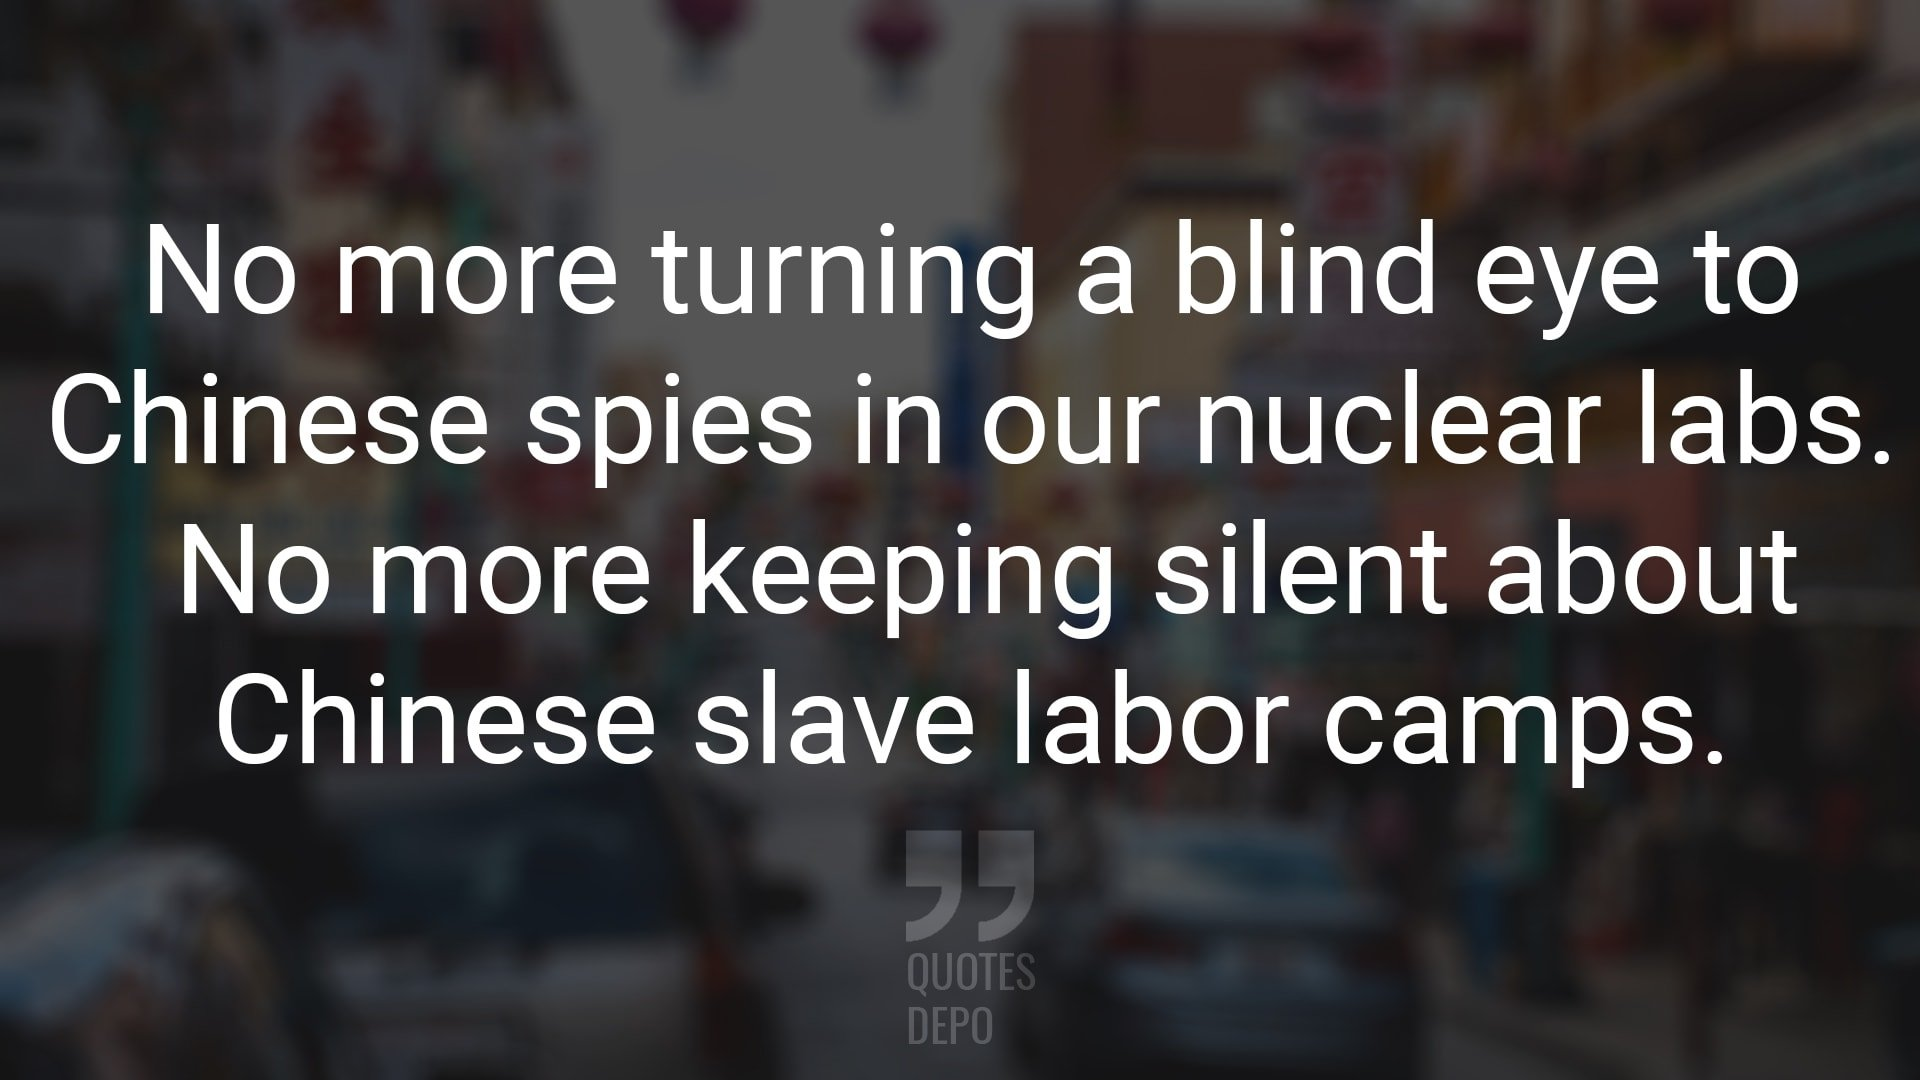 No More Turning a Blind Eye to Chinese Spies